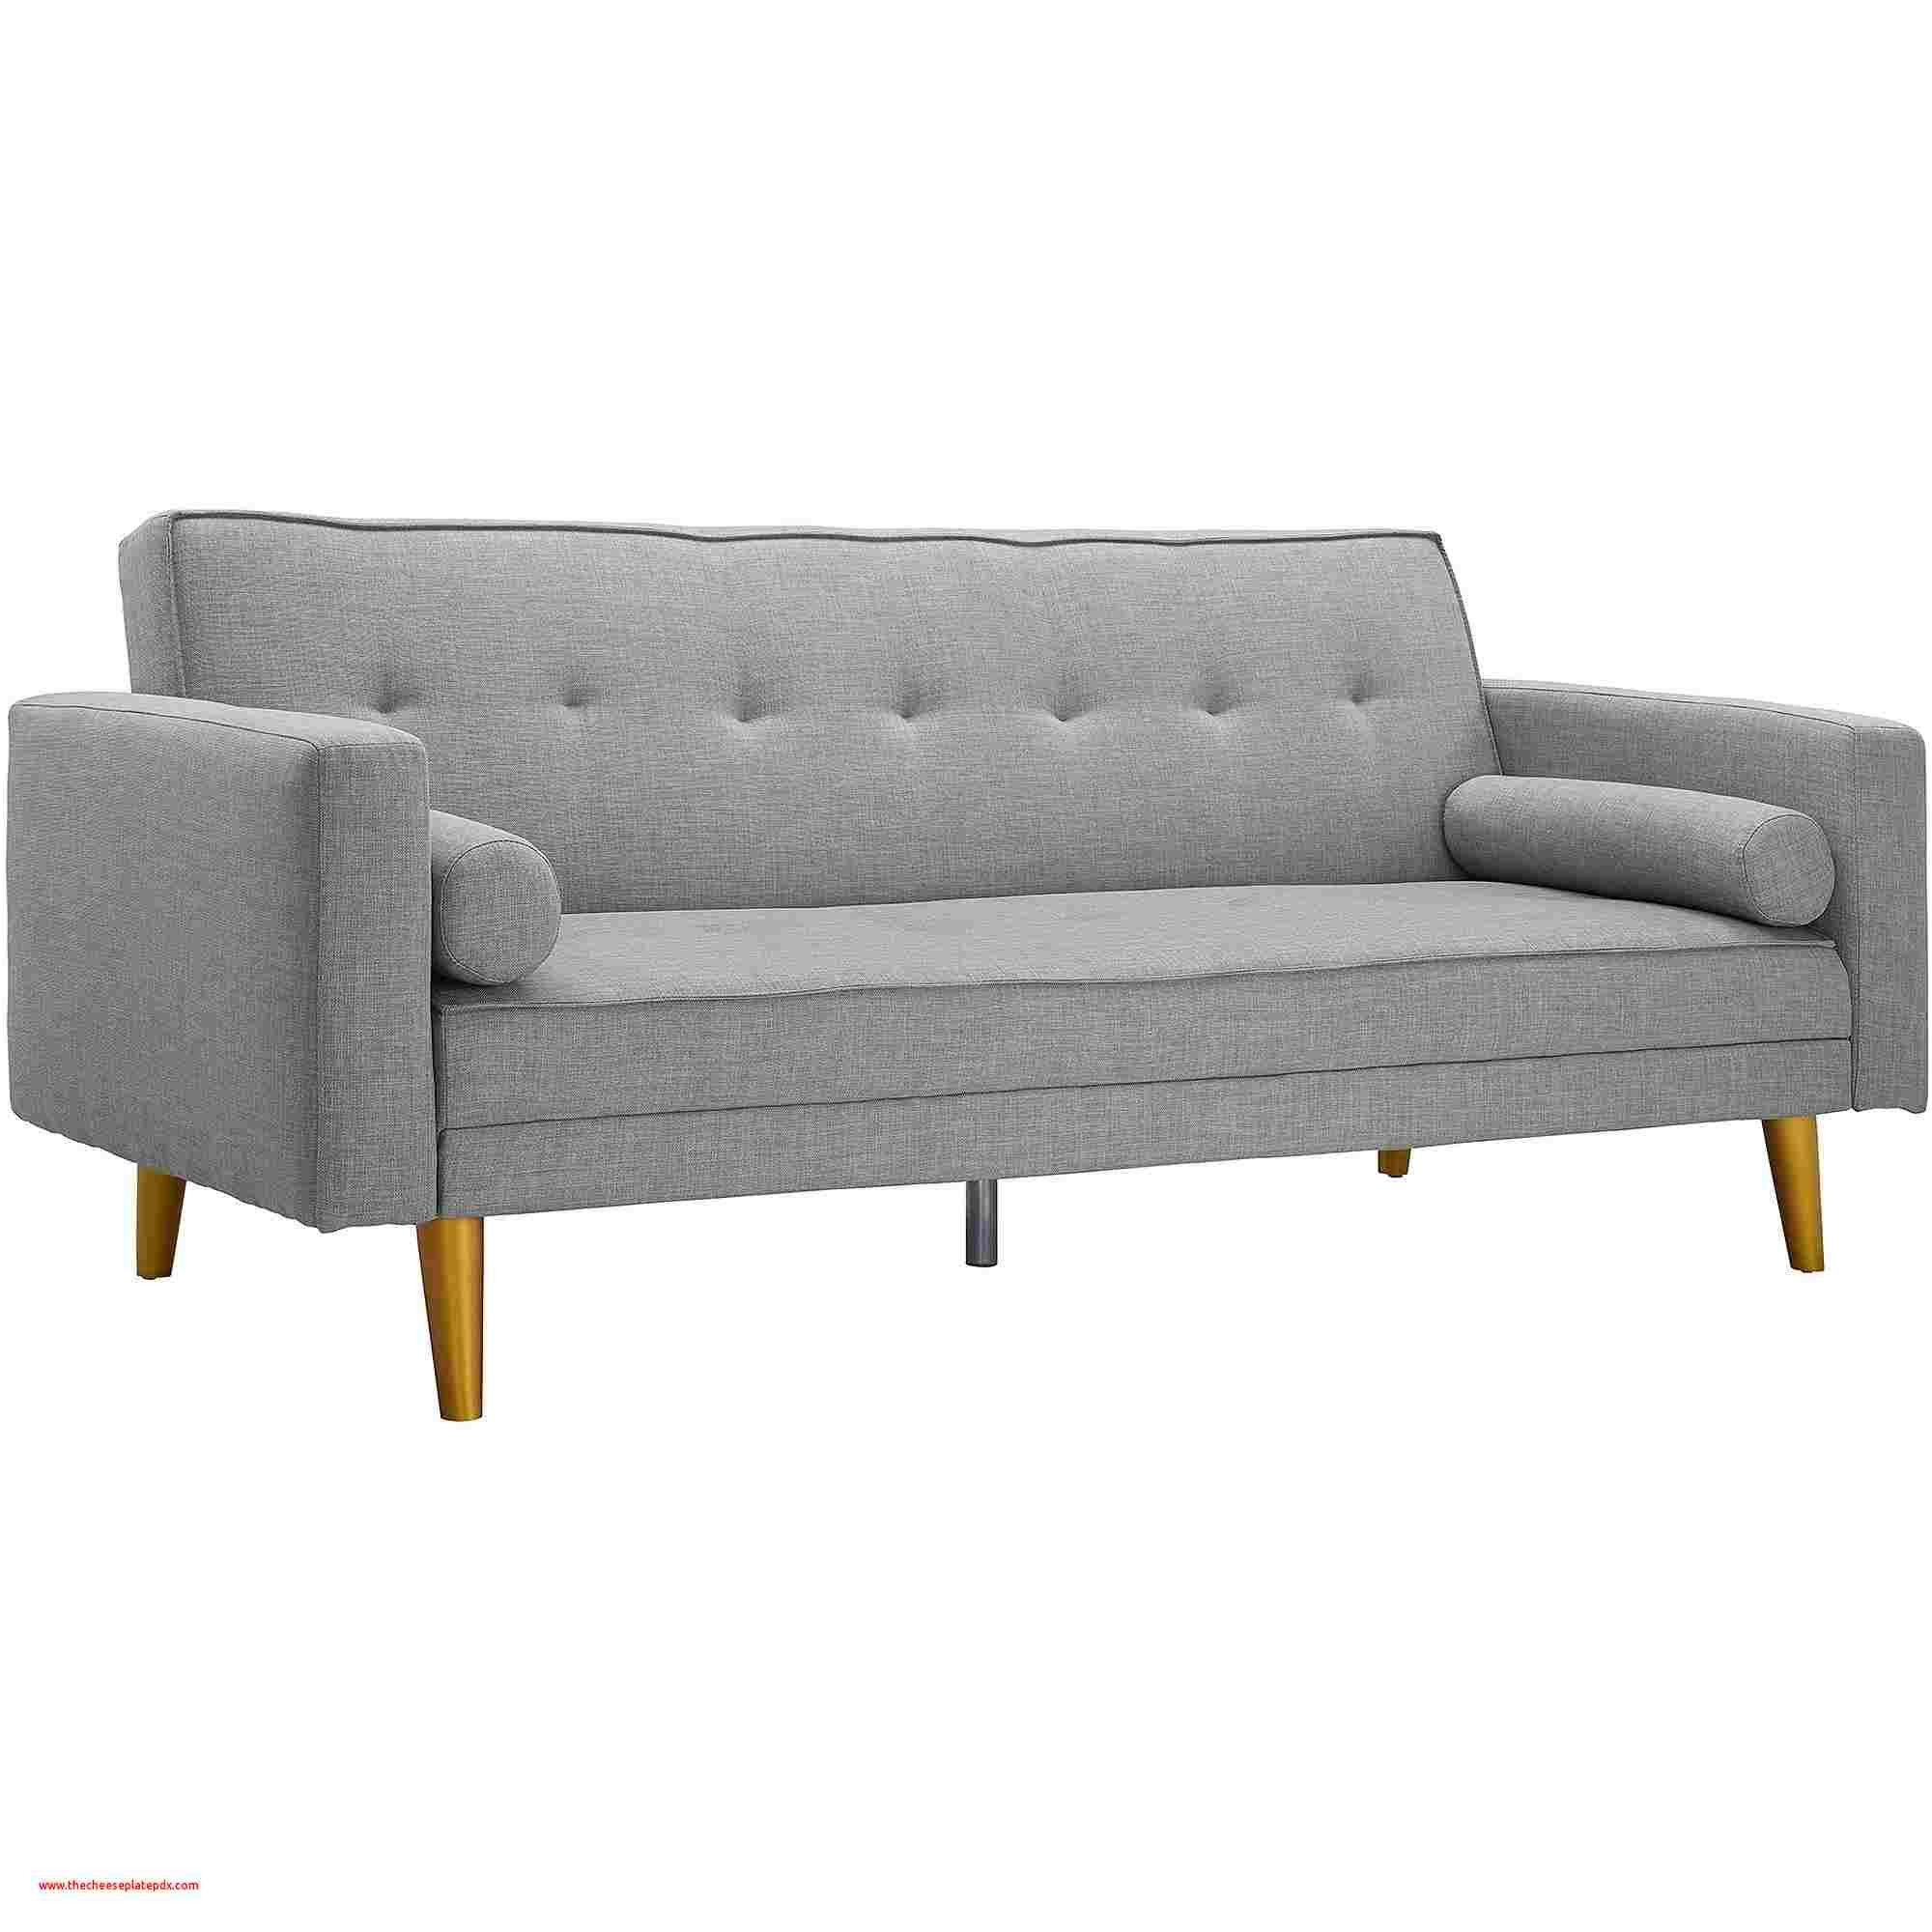 Akzeptabel Couch Relaxfunktion Couch Mobel Sofa Couch Dan